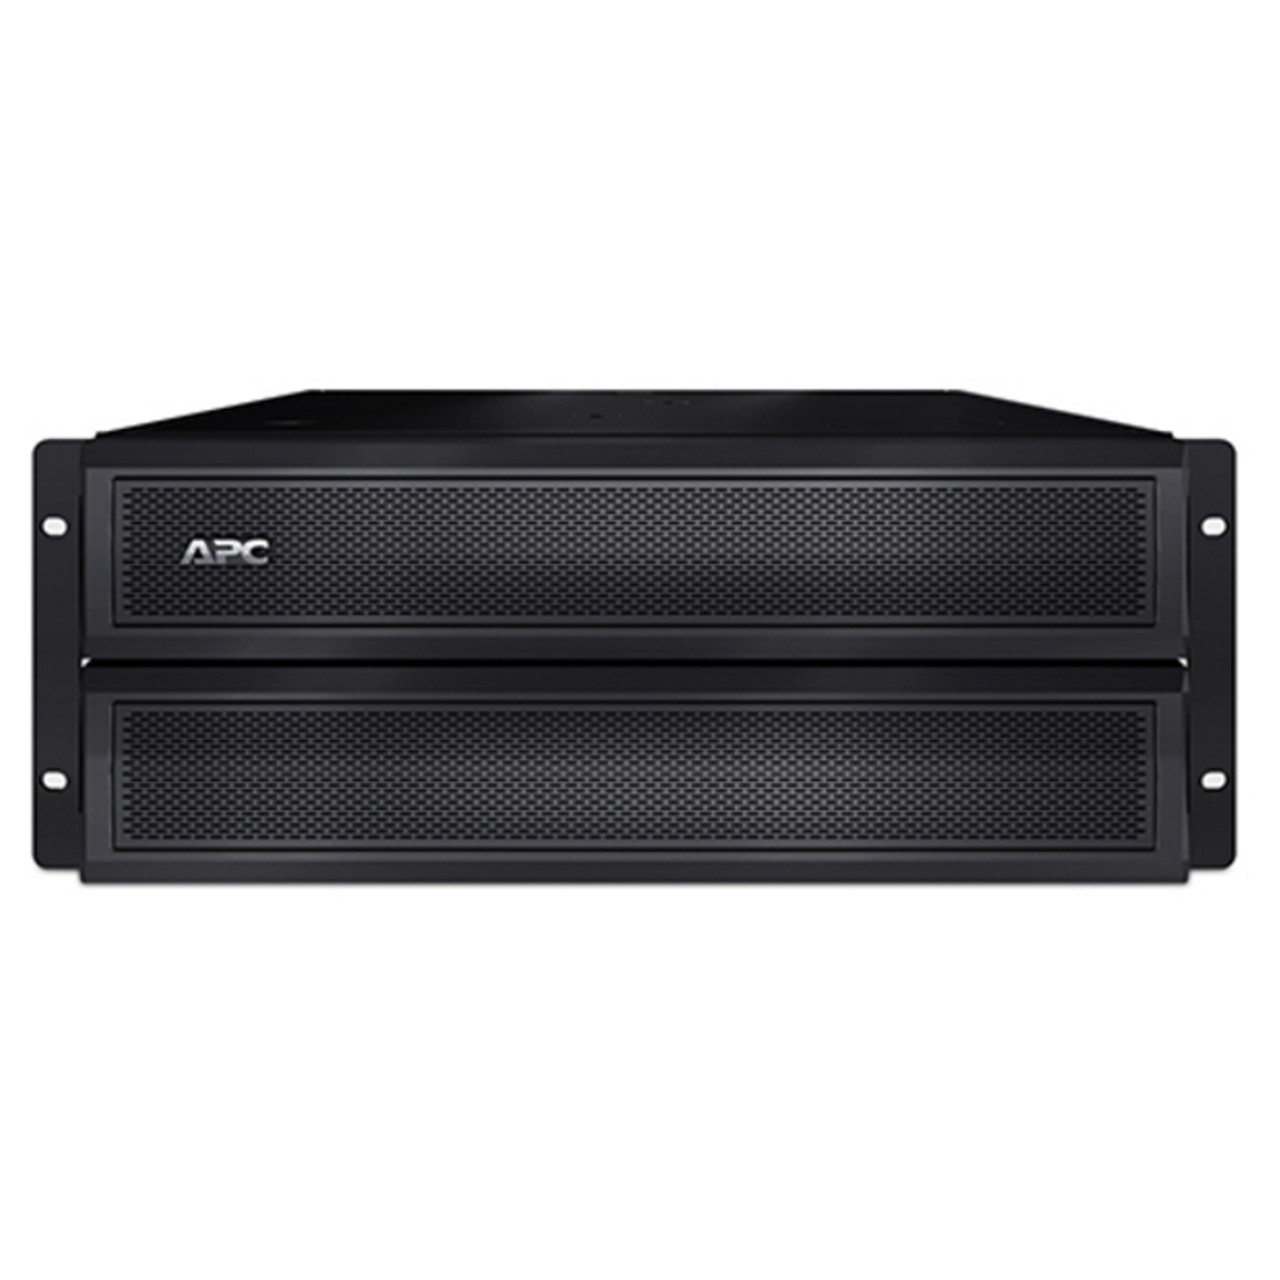 Image for APC SMX120BP Smart UPS X 120V External Battery Pack Rack/Tower CX Computer Superstore